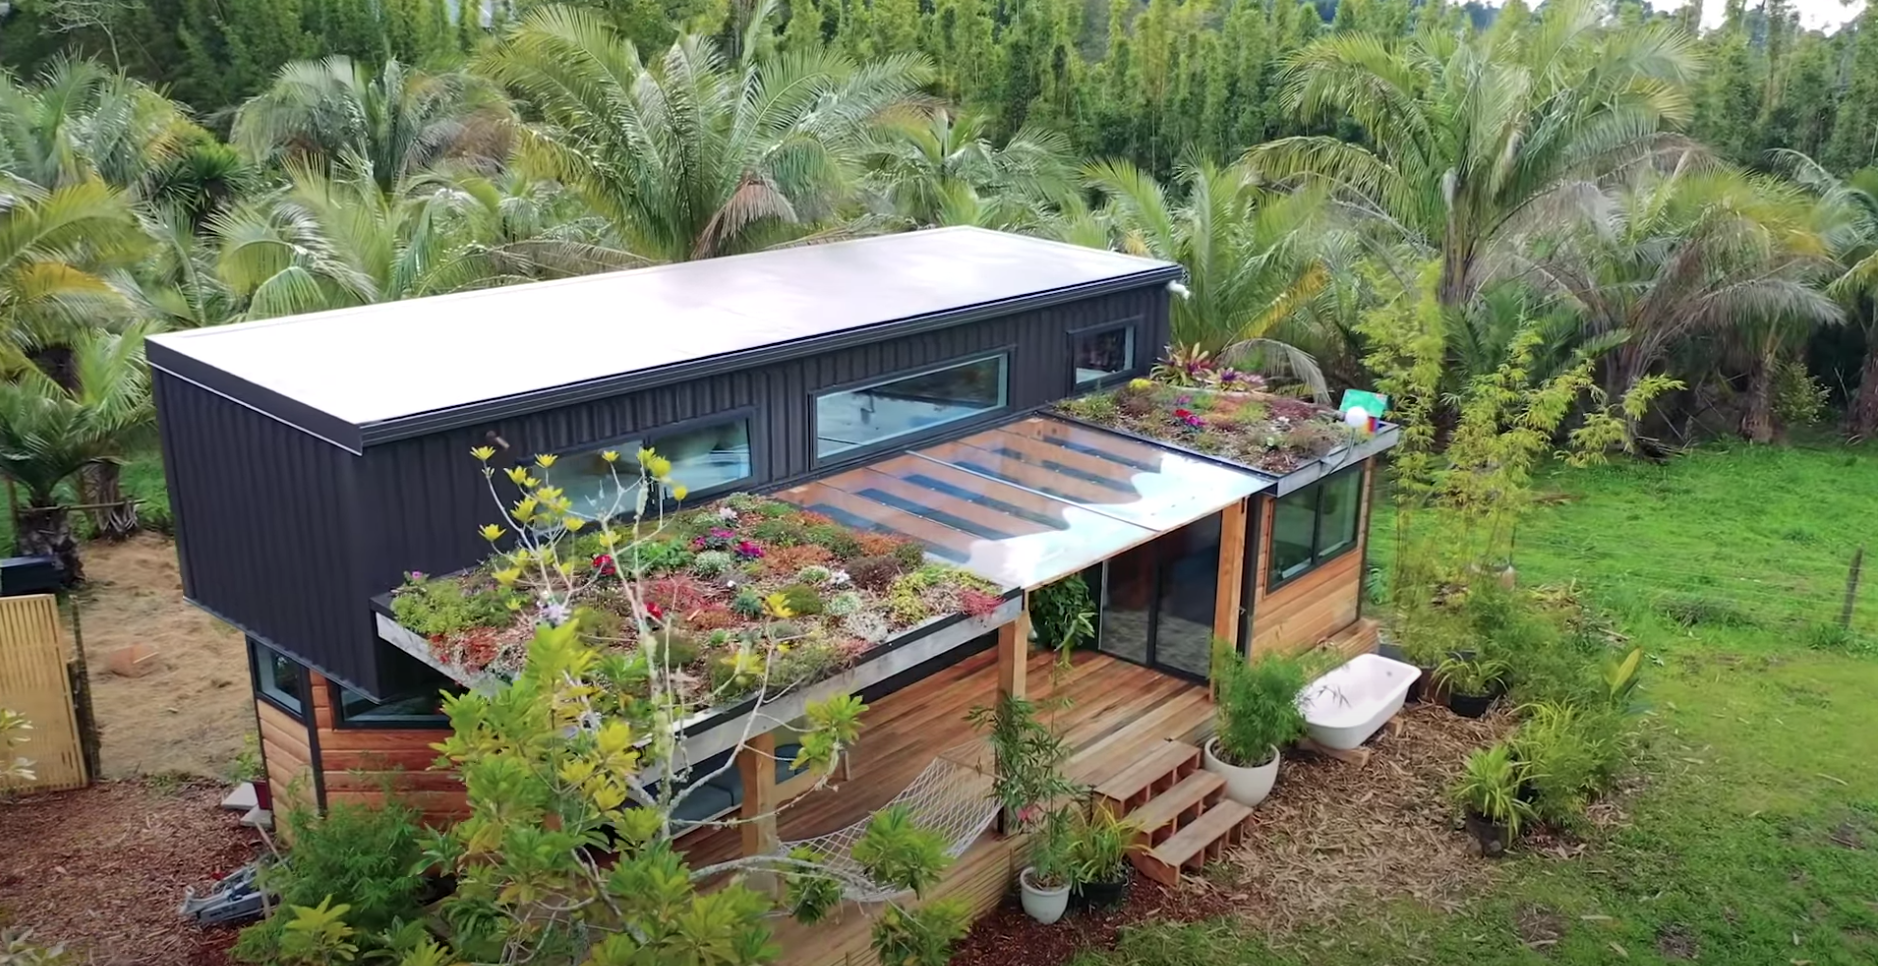 A beautiful home in a tropical paradise with a lush garden on the roof